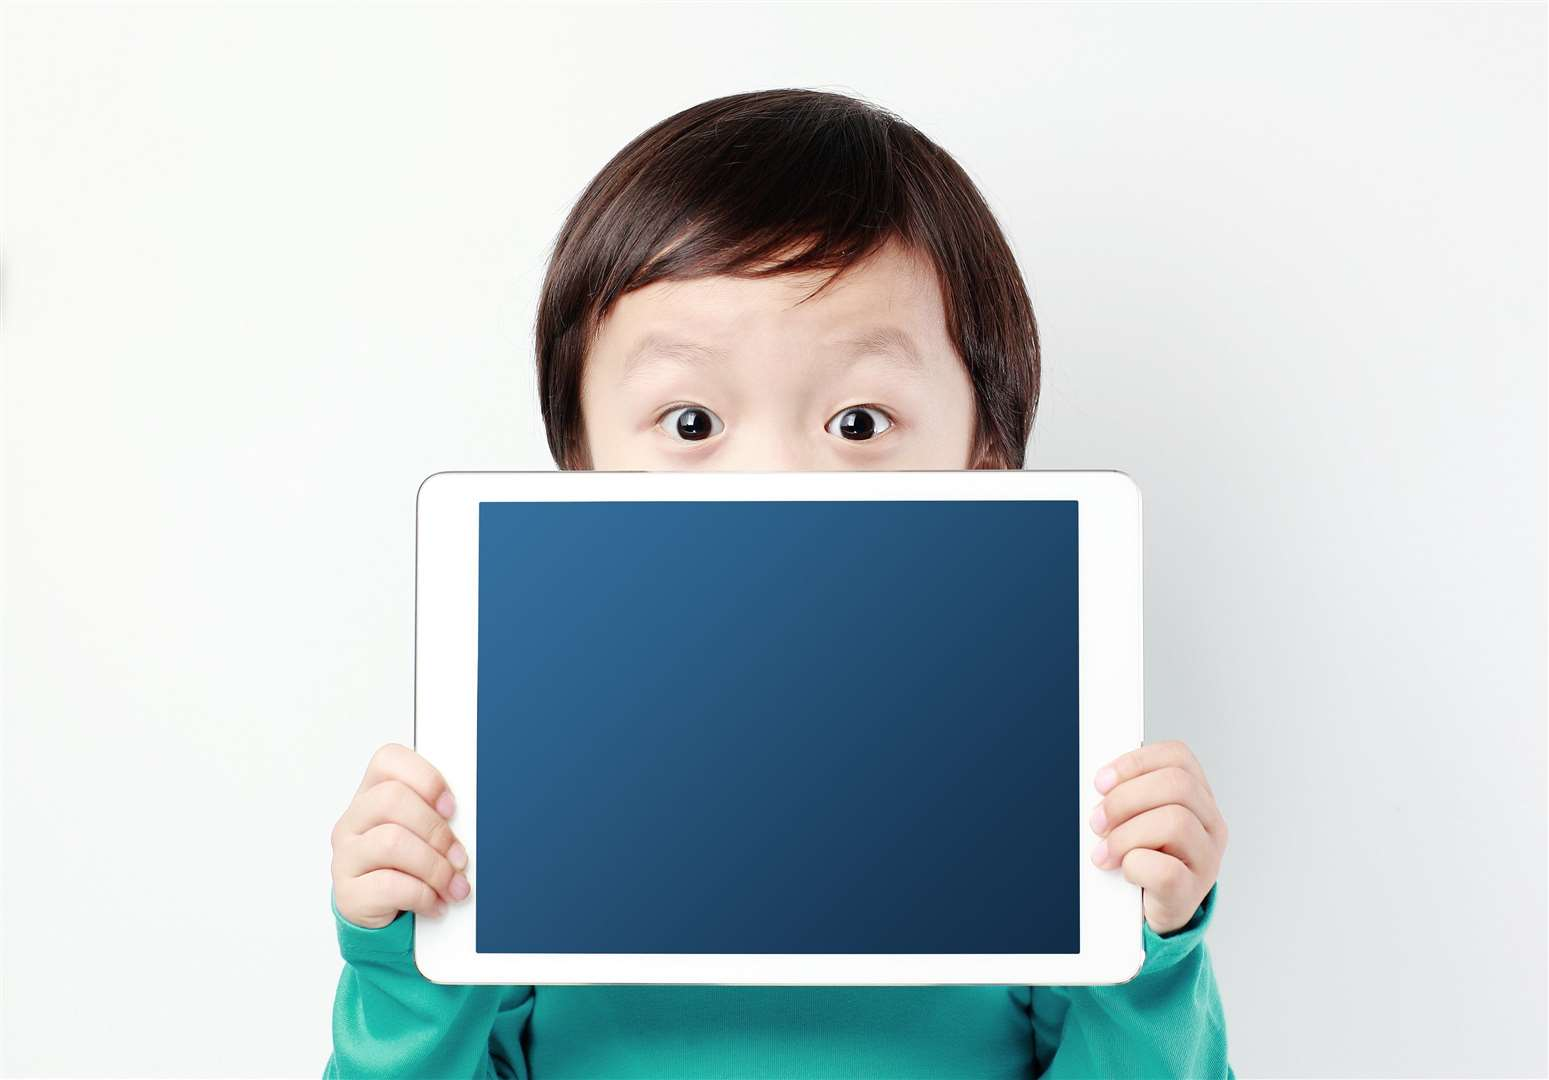 How well do you monitor your children's use of screens?